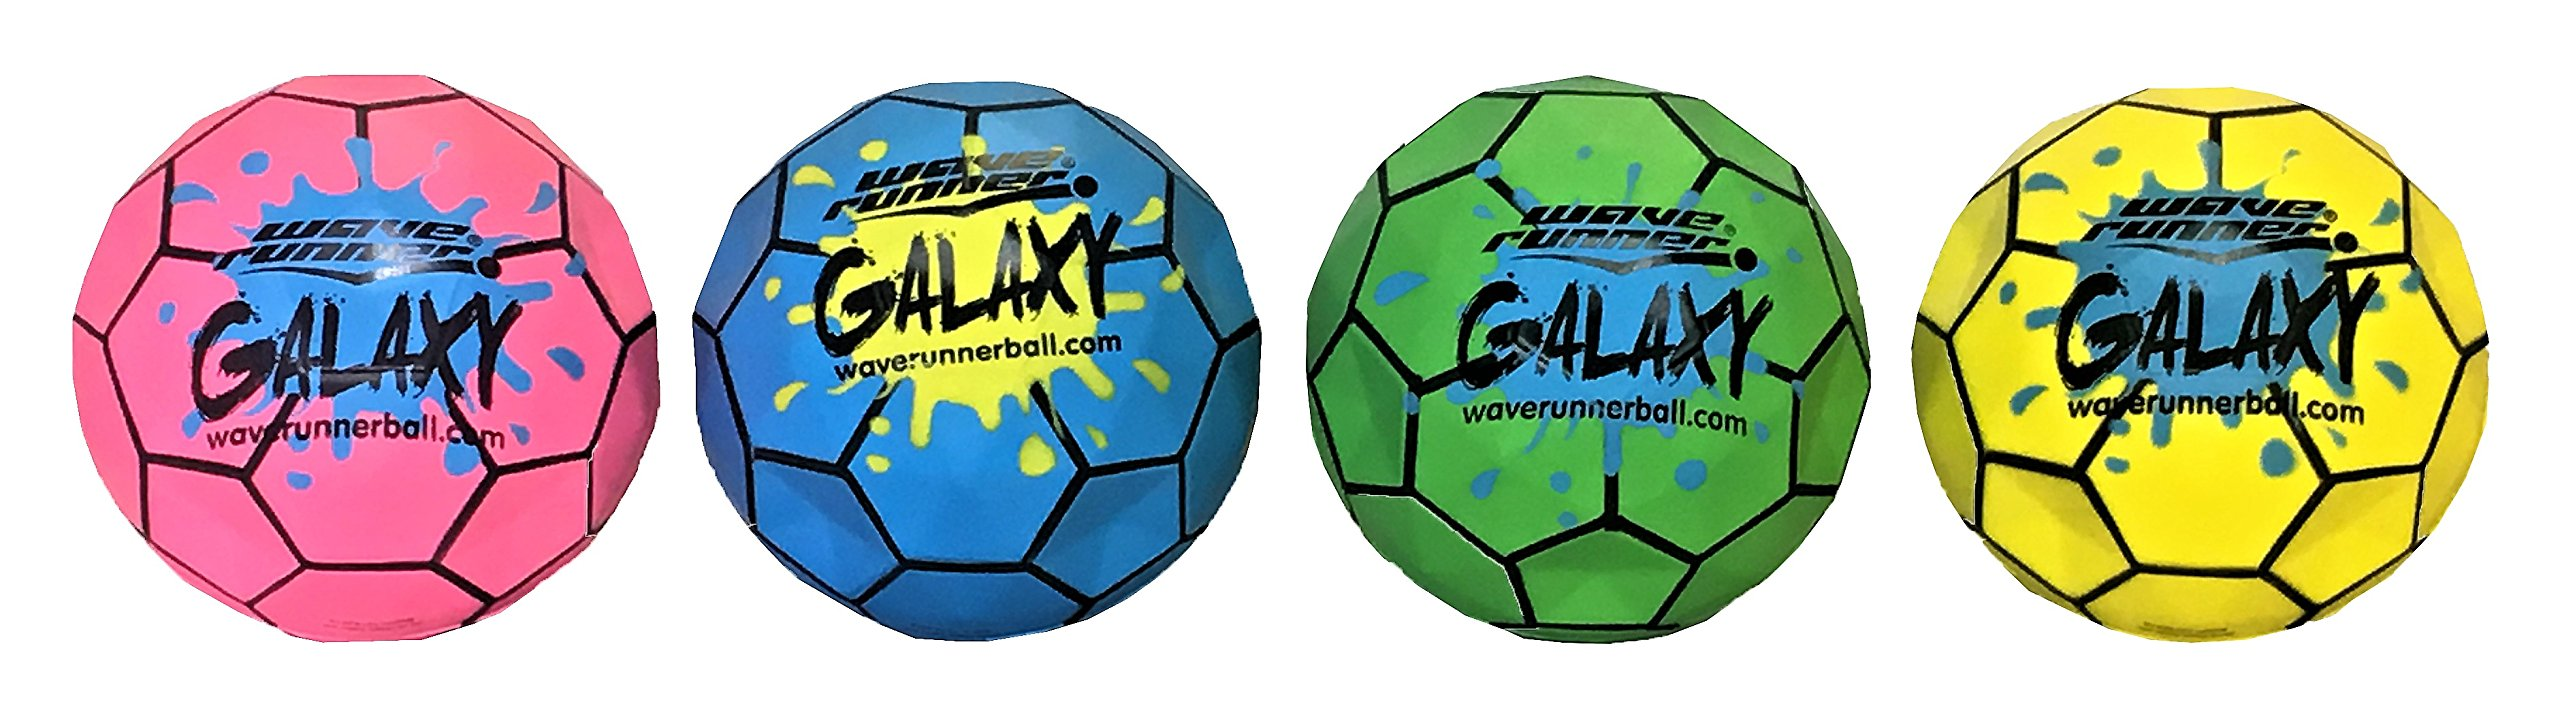 Wave Runner Galaxy Ball #1 Water Ball for Skipping and Bouncing The Perfect Pool Ball and Ocean Ball by Wave Runner